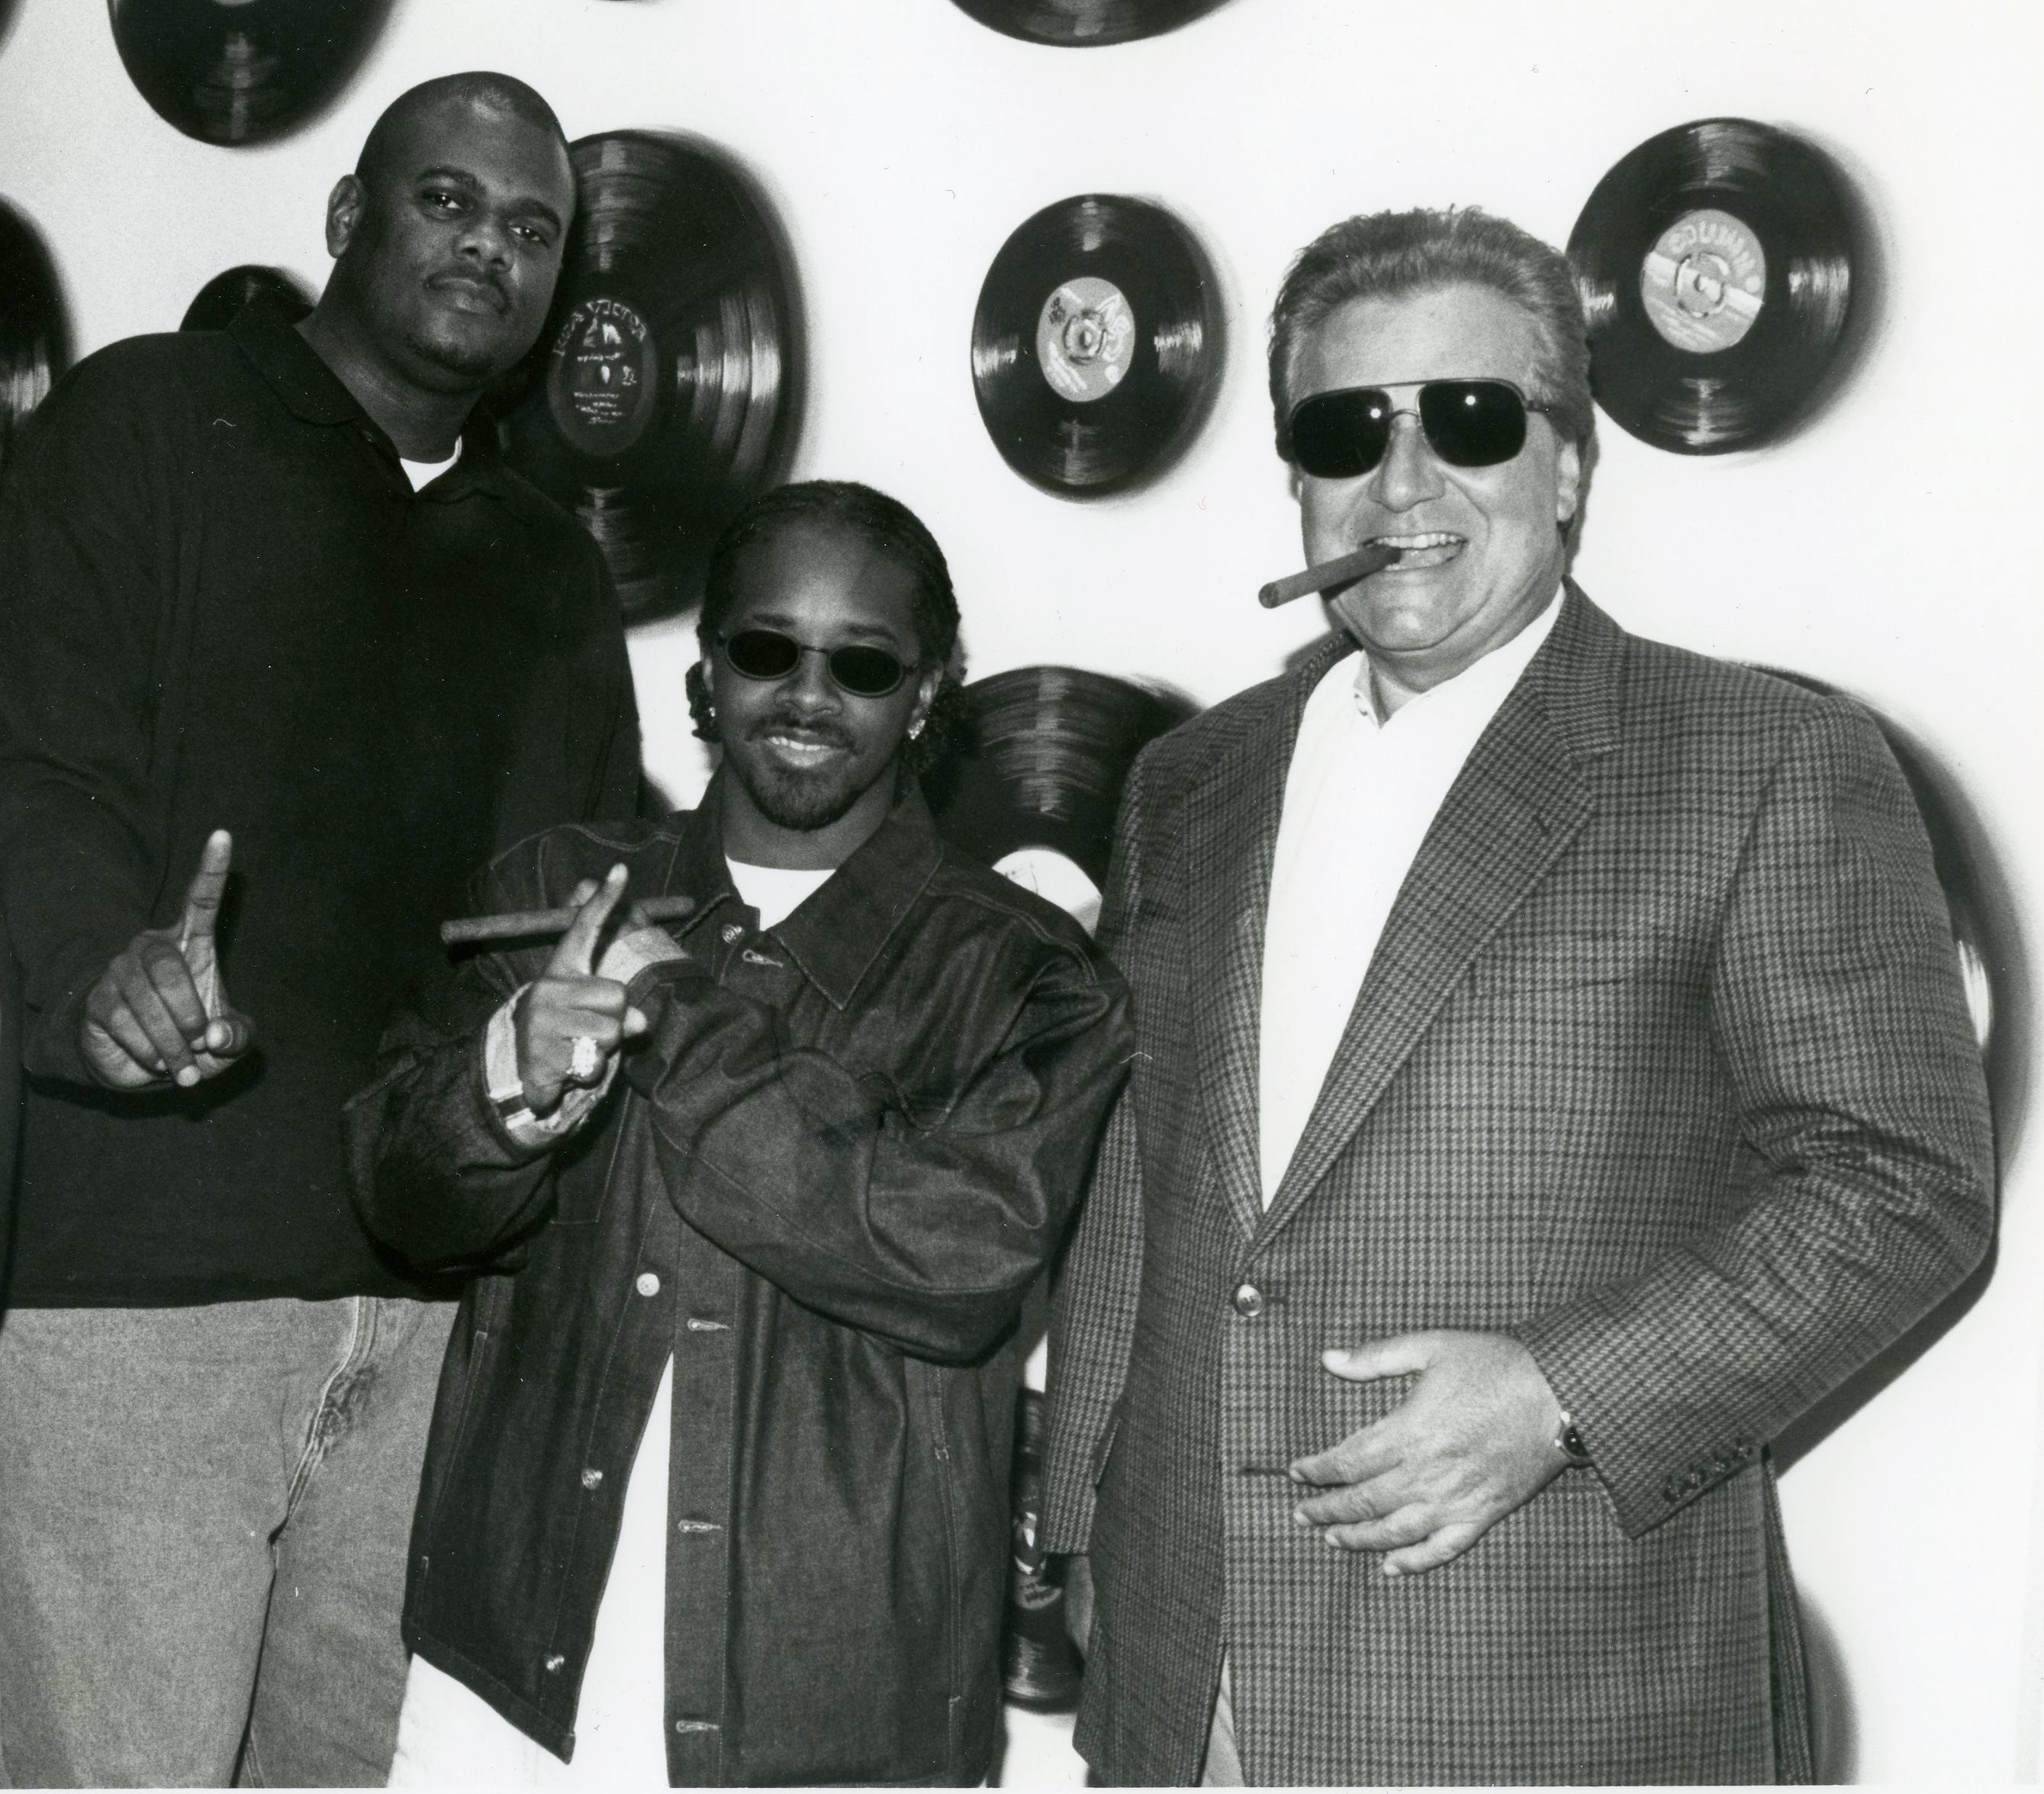 JP in a smoke-filled room with Jermaine Dupri and Marty Bandier